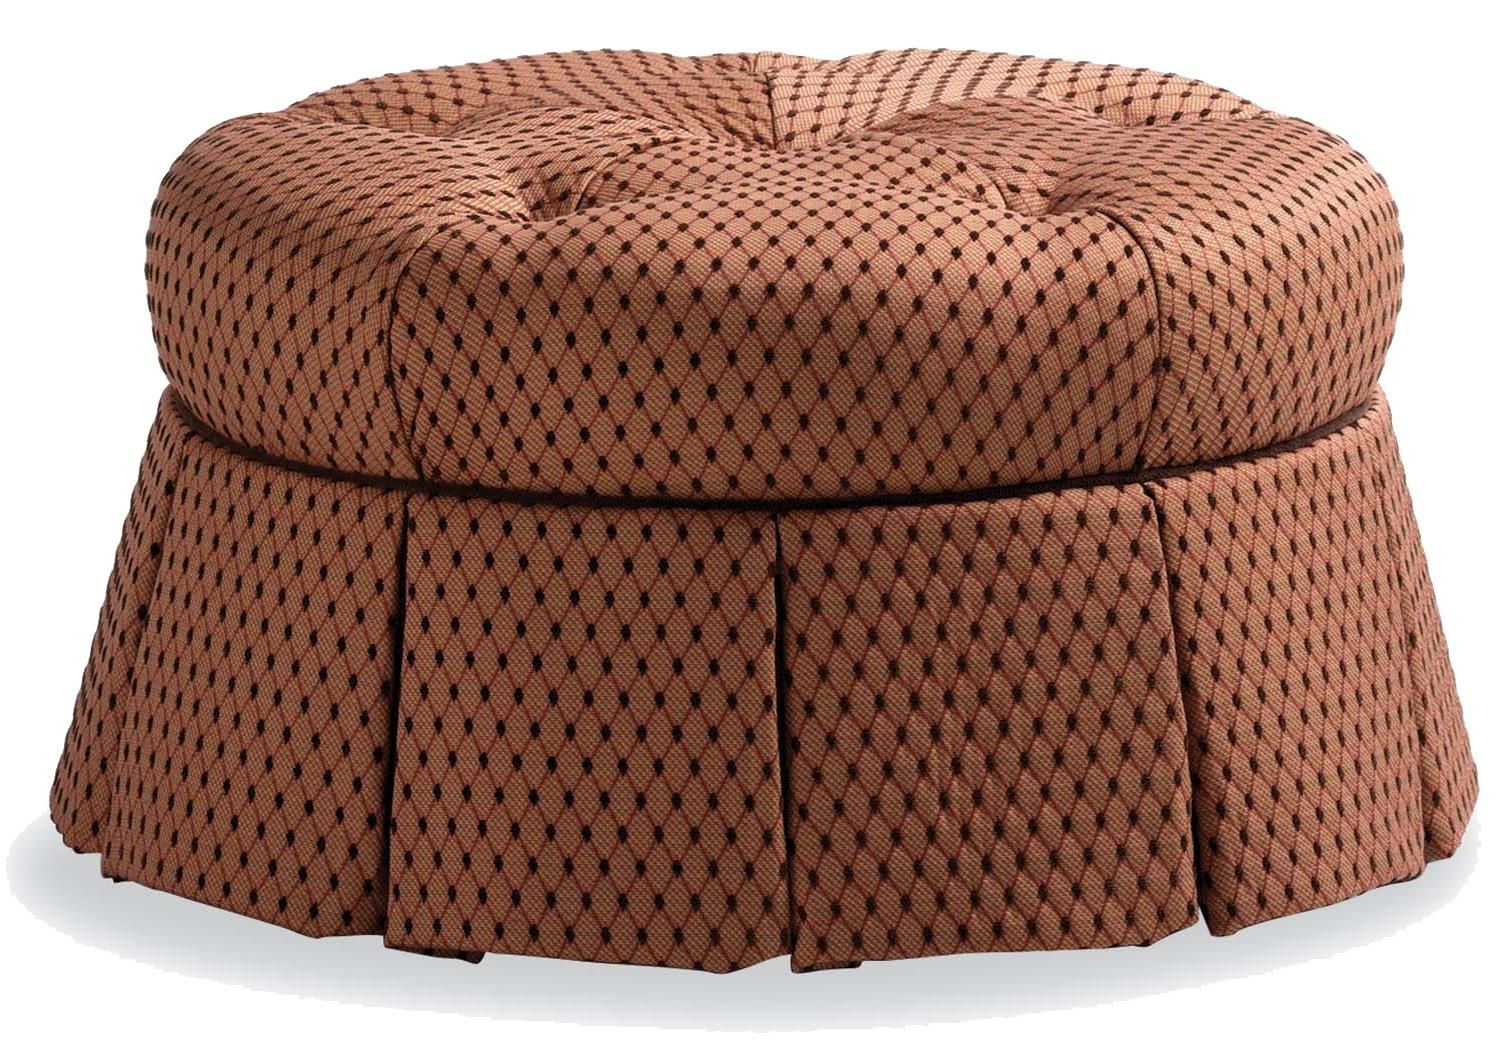 Fine Upholstered Accents Round Ottoman With Pleated Skirt